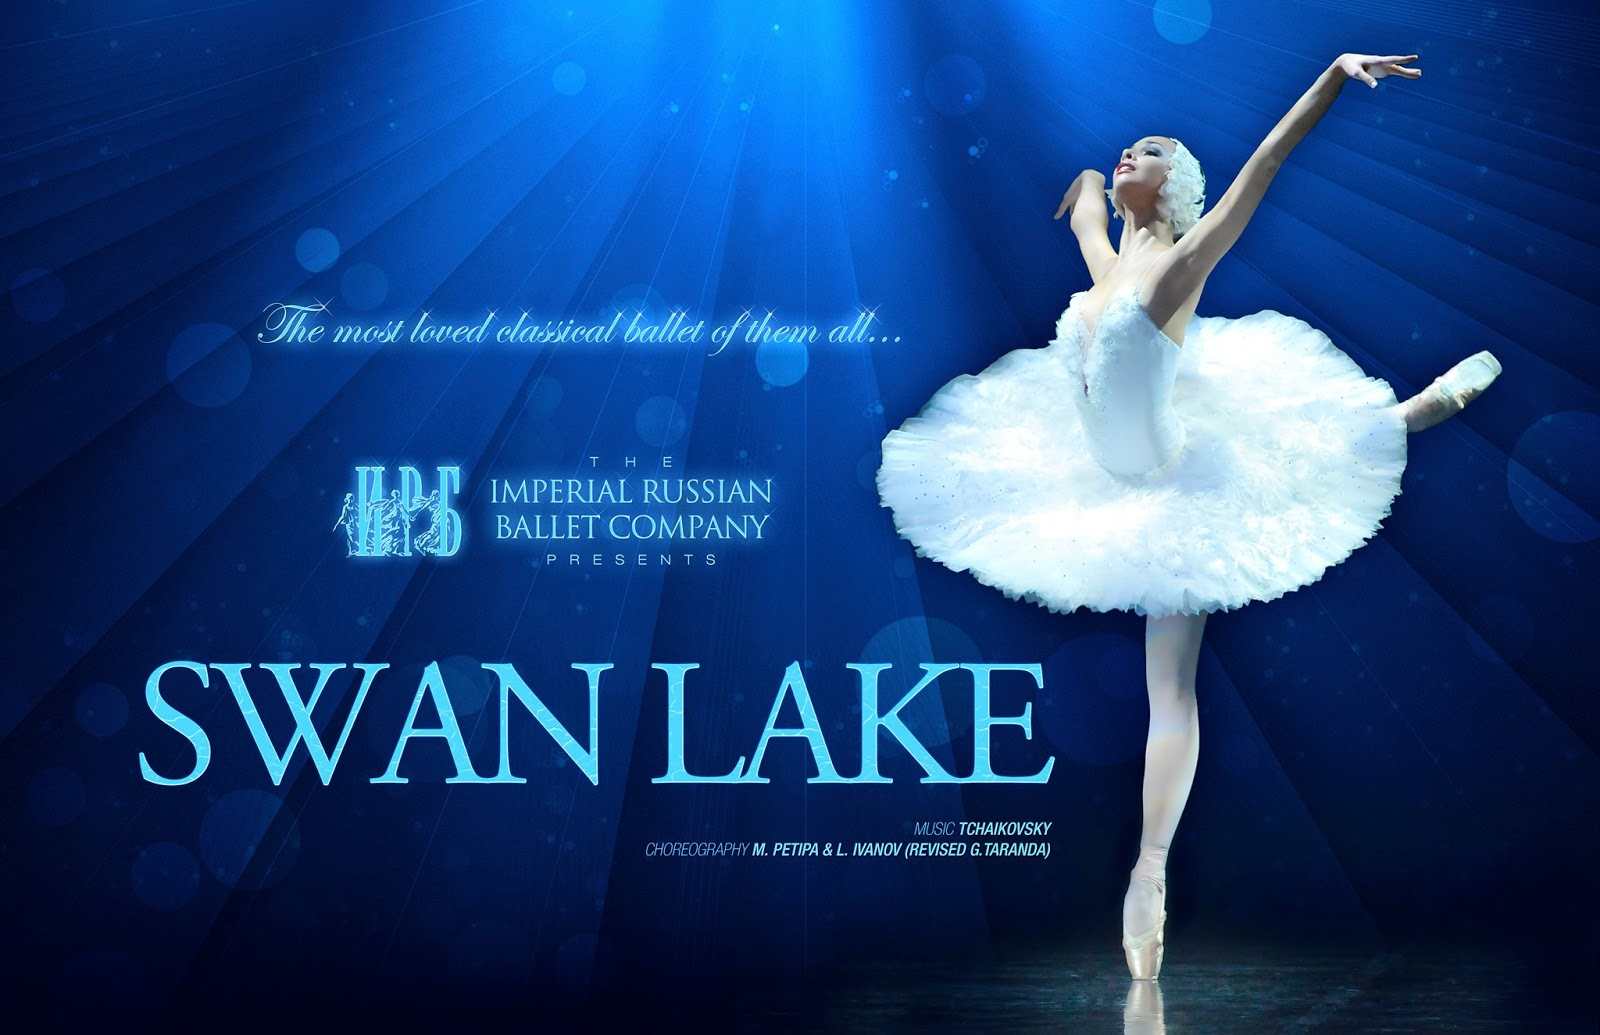 swan lake dating Swan lake tour dates, concert tickets 2018 barbie of swan lake is a 2003 direct-to-dvd barbie movie directed by owen hurley it is the third computer animated movie of barbie film series.